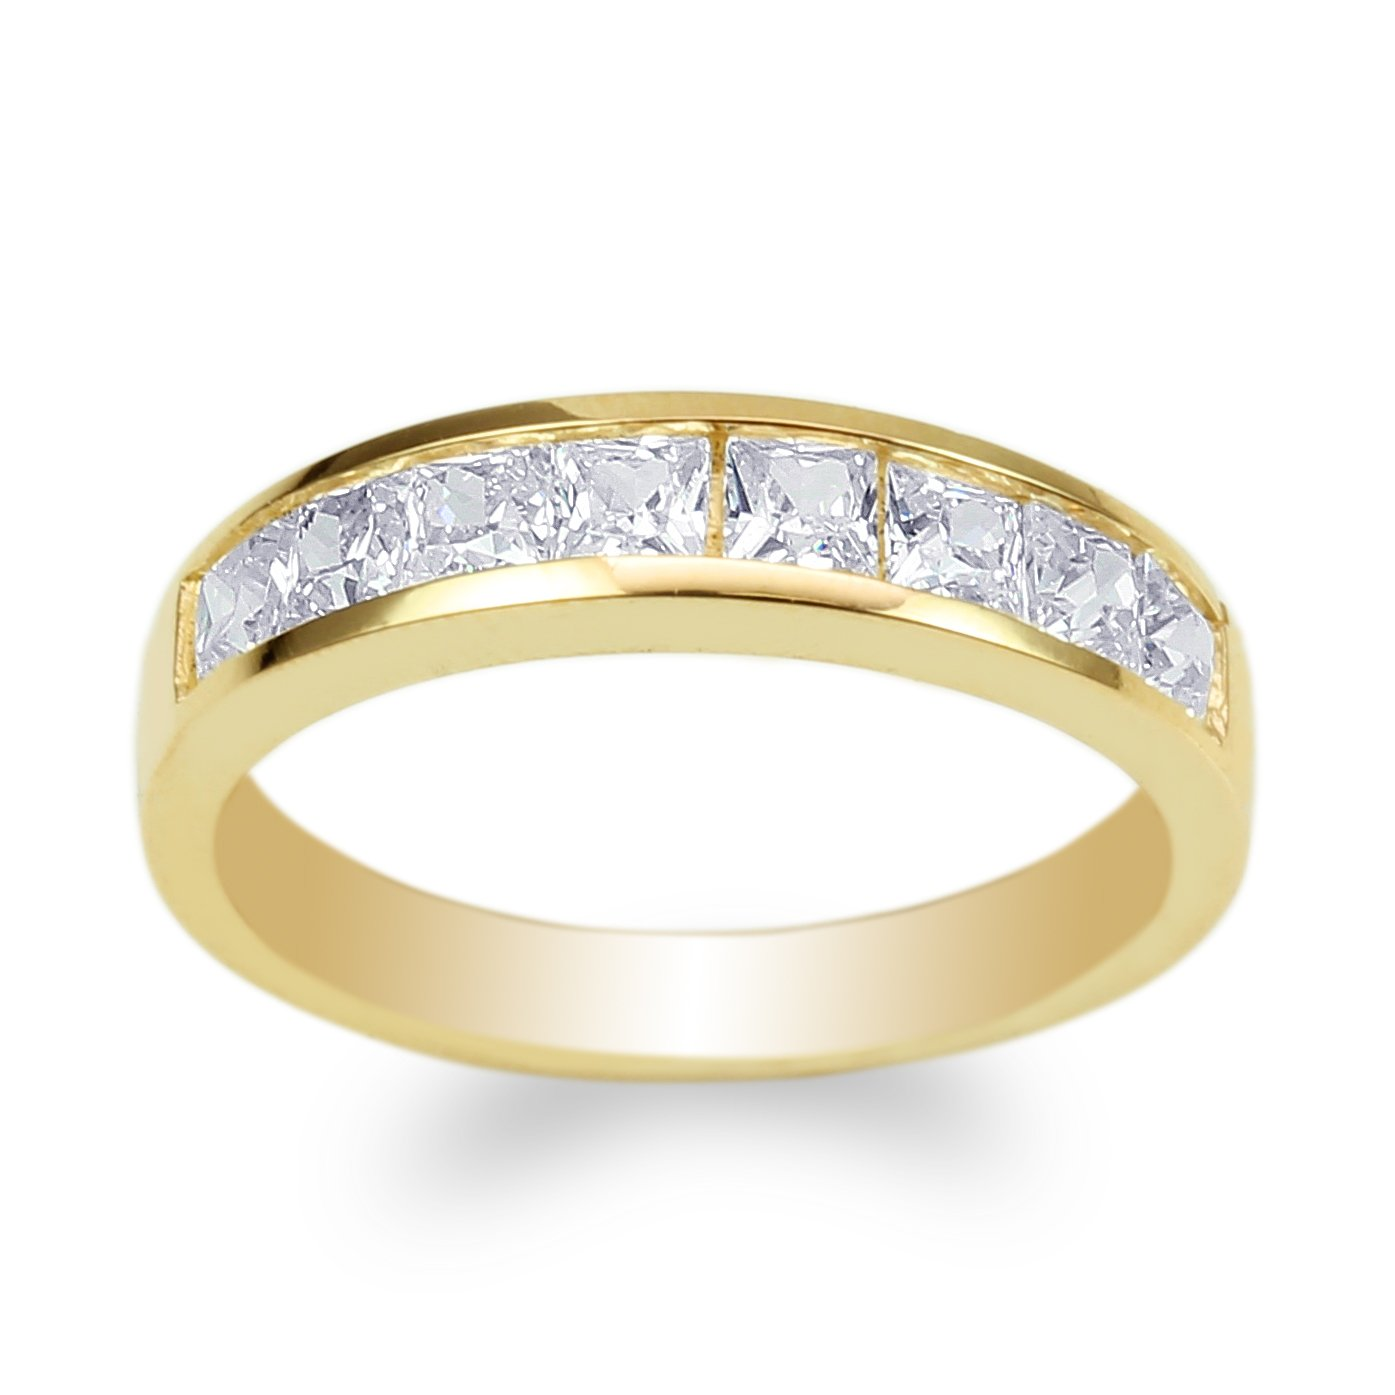 JamesJenny Ladies Yellow Gold Plated Square CZ Channel Band Ring Size 6.5